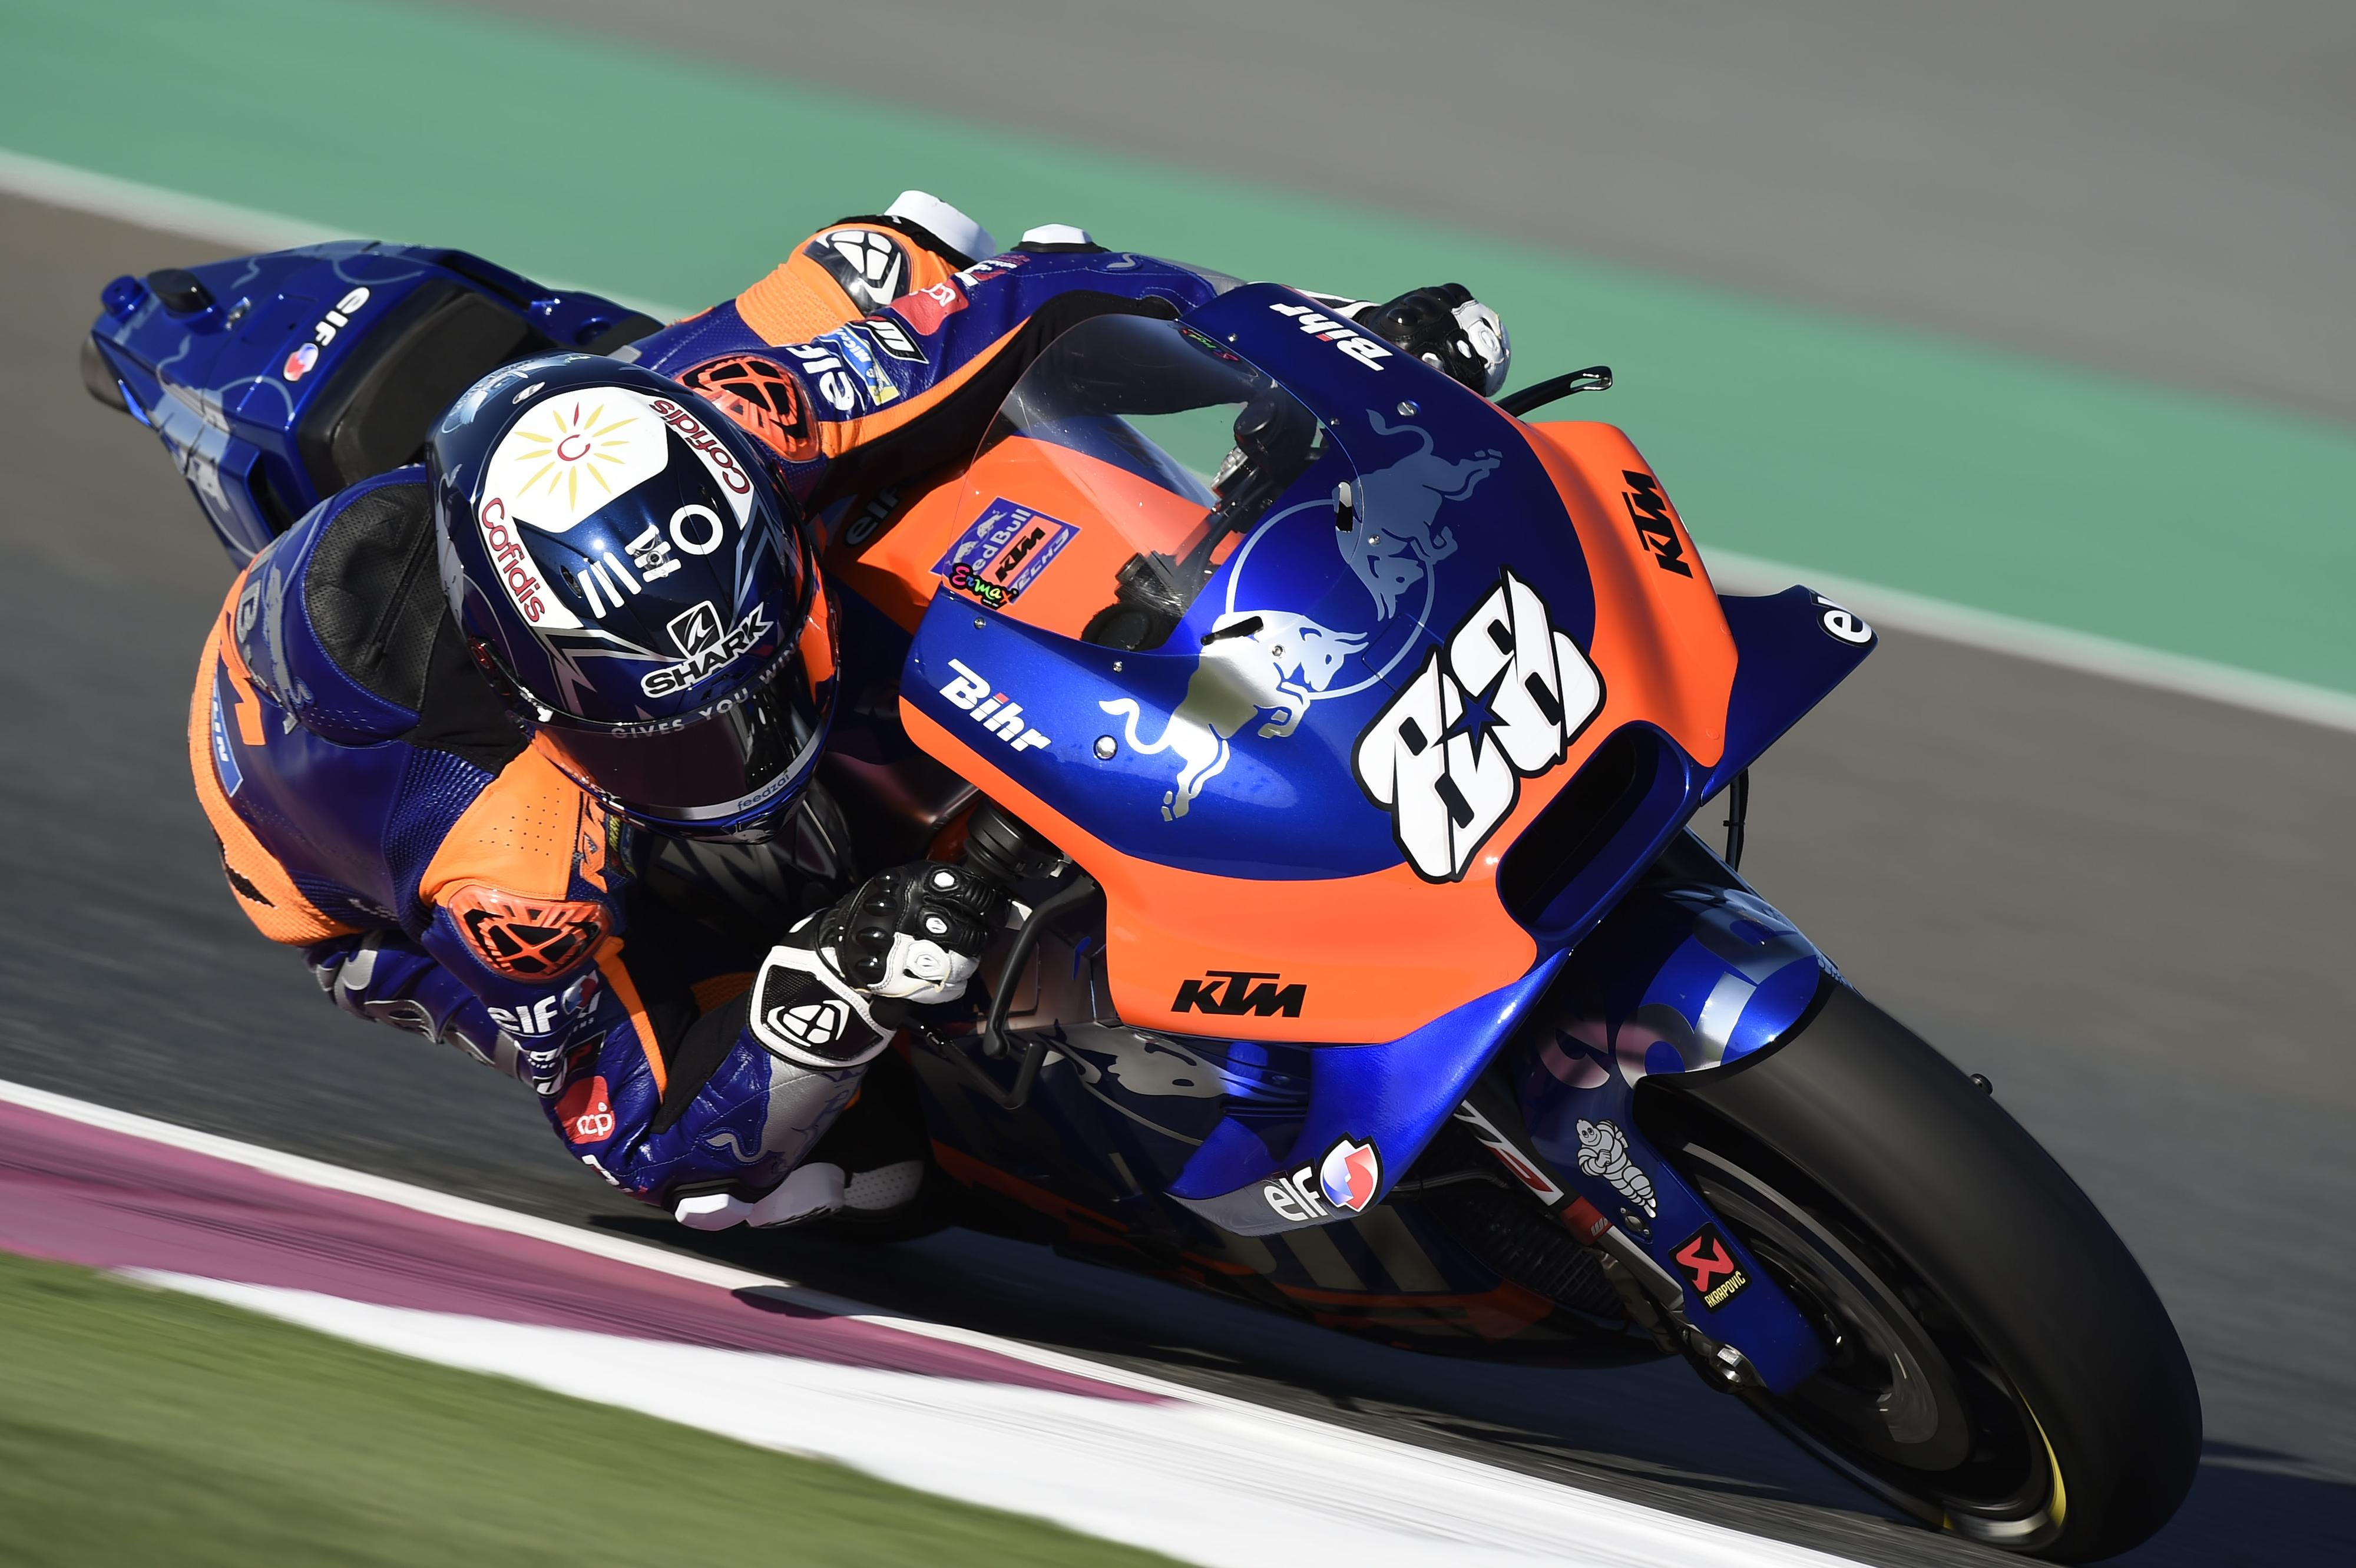 Good start for Miguel Oliveira in Qatar - Miguel Oliveira #88 ...